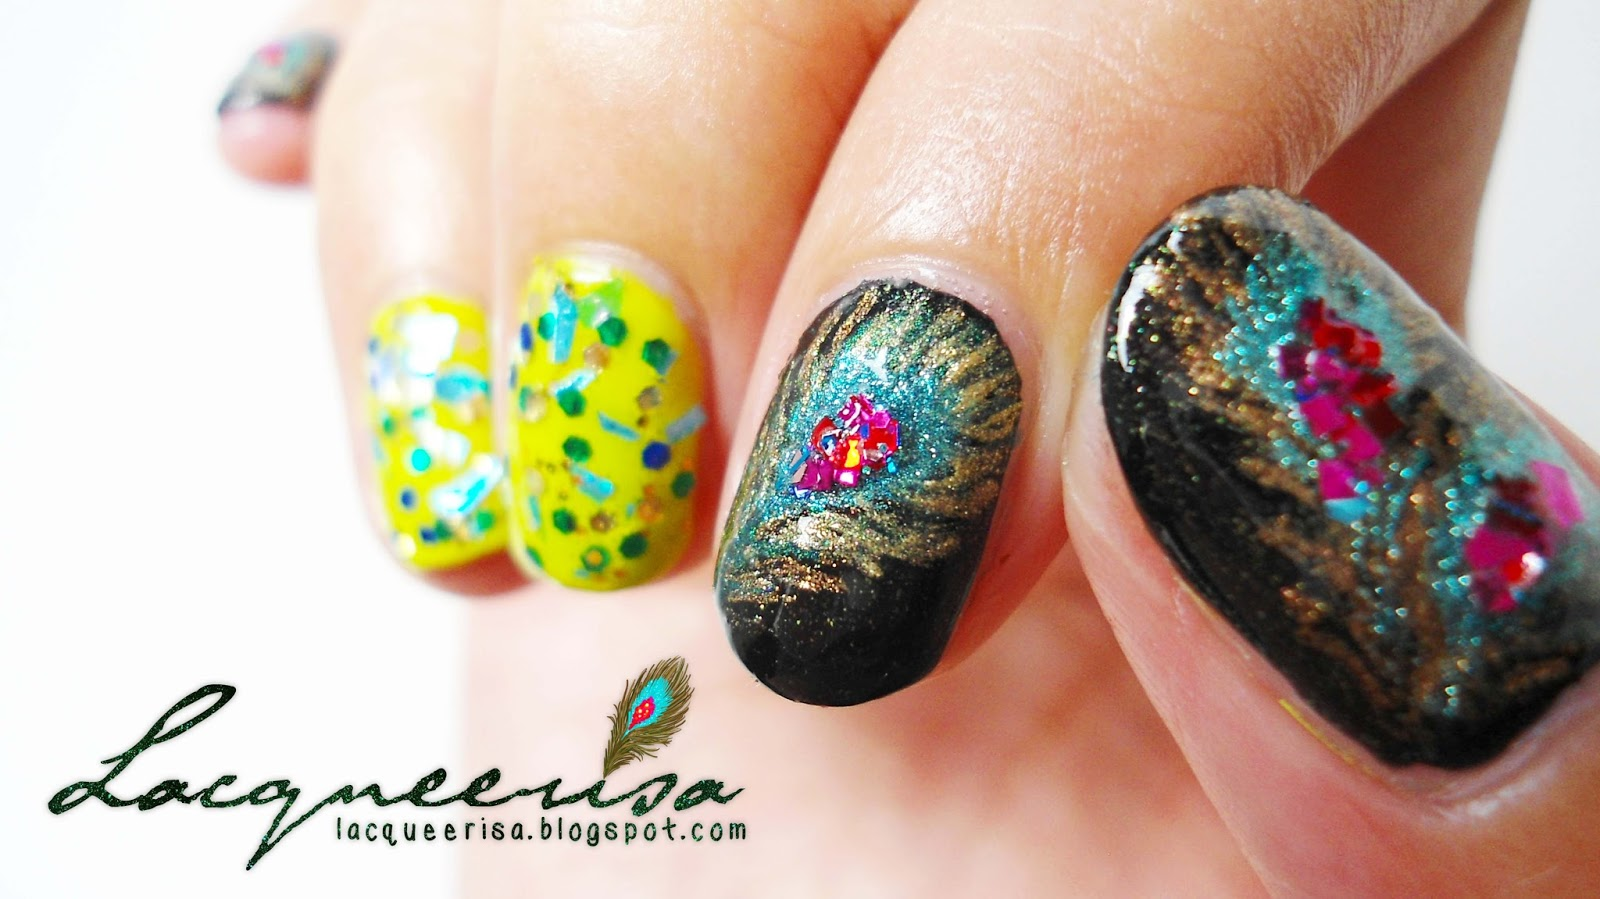 Lacqueerisa: Deepavali Peacock Nails